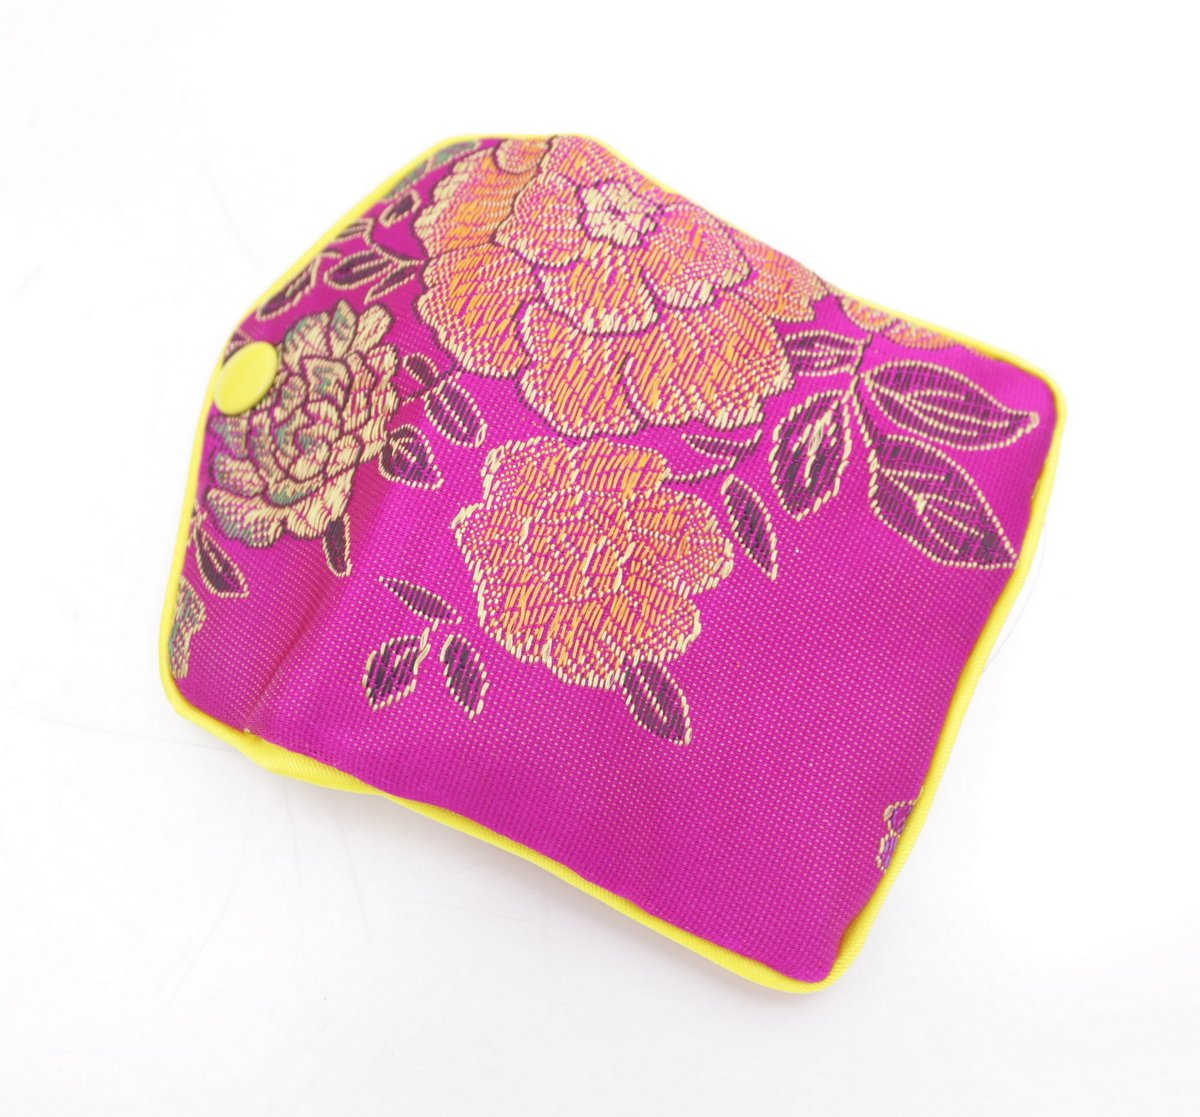 beauty 10 pcs pink flower baldachin cloth gift jewelry bags pouches 65mmx80mm